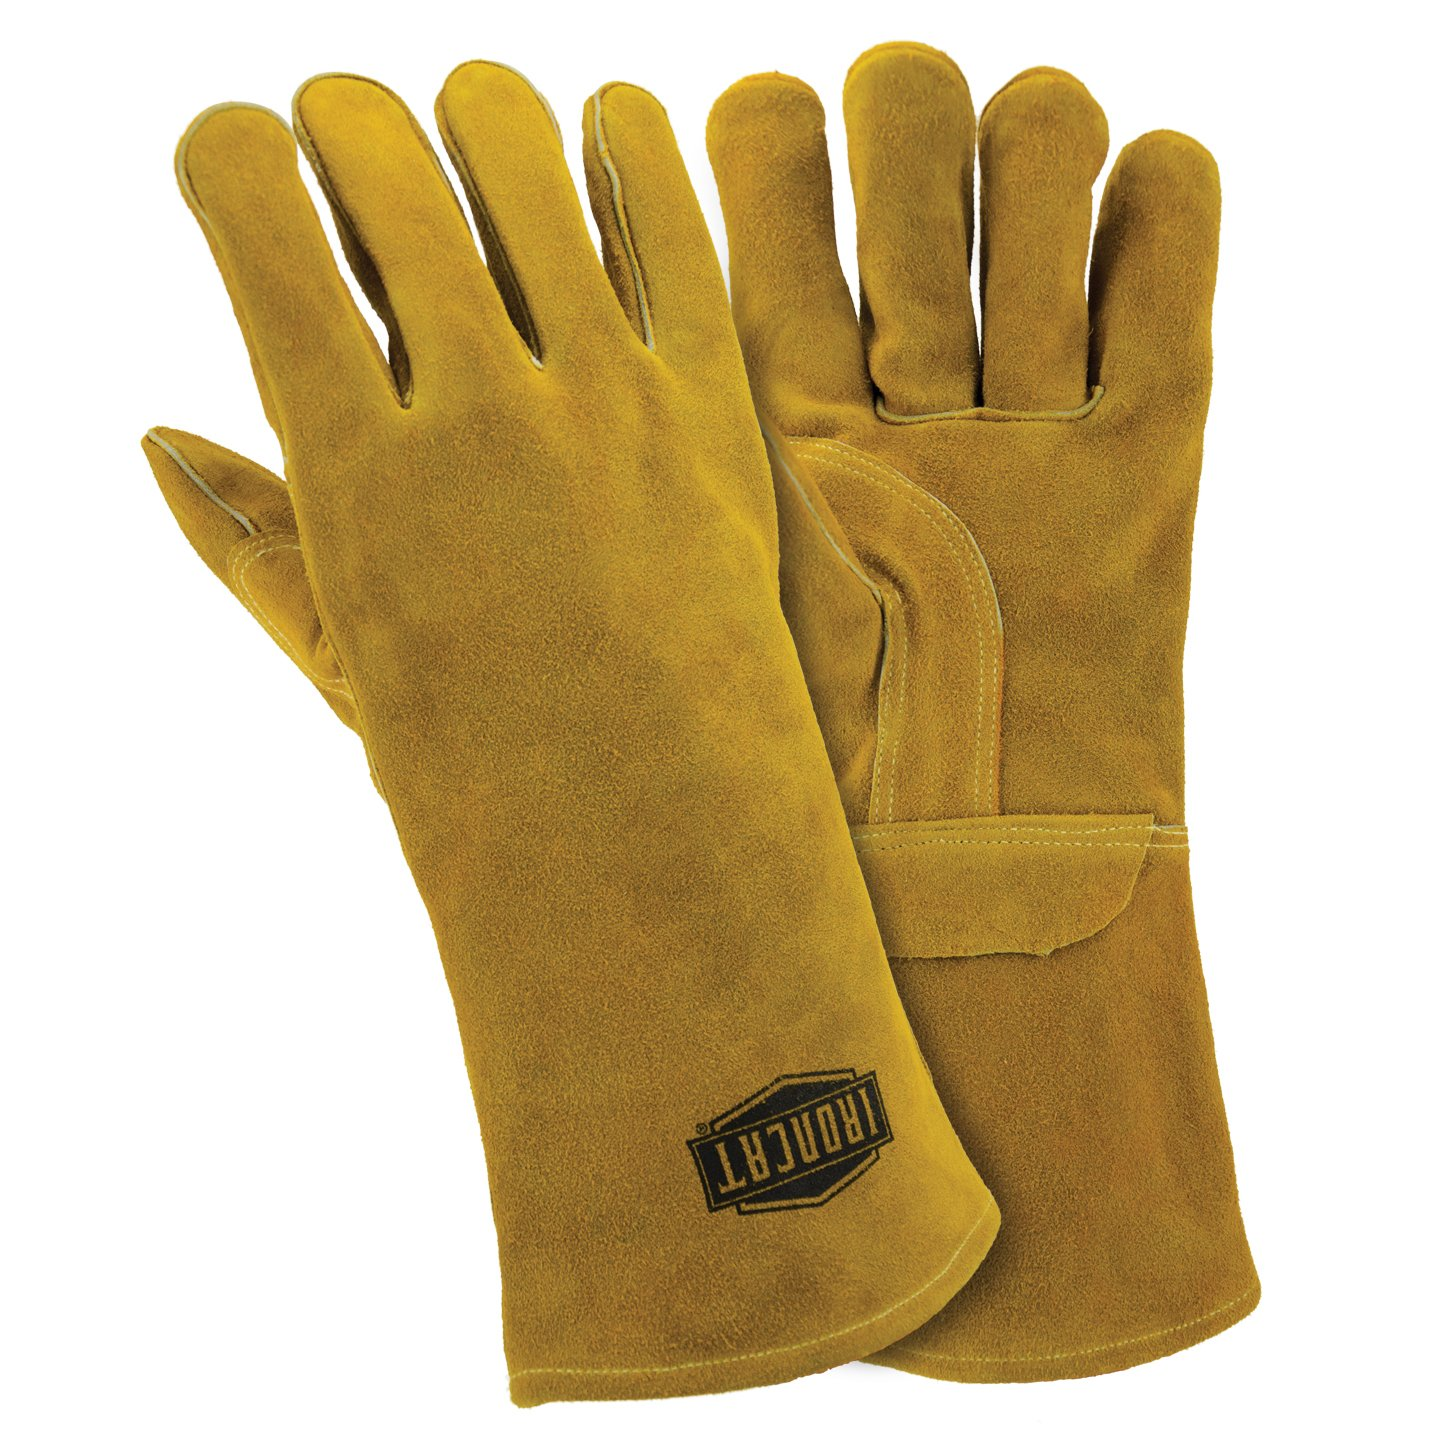 West Chester IRONCAT 9030 Select Split Cowhide Stick Welding Gloves - Large, [Pack of 12] Left Hand Work Gloves with Straight Thumb, Cotton Lining, Kevlar Thread